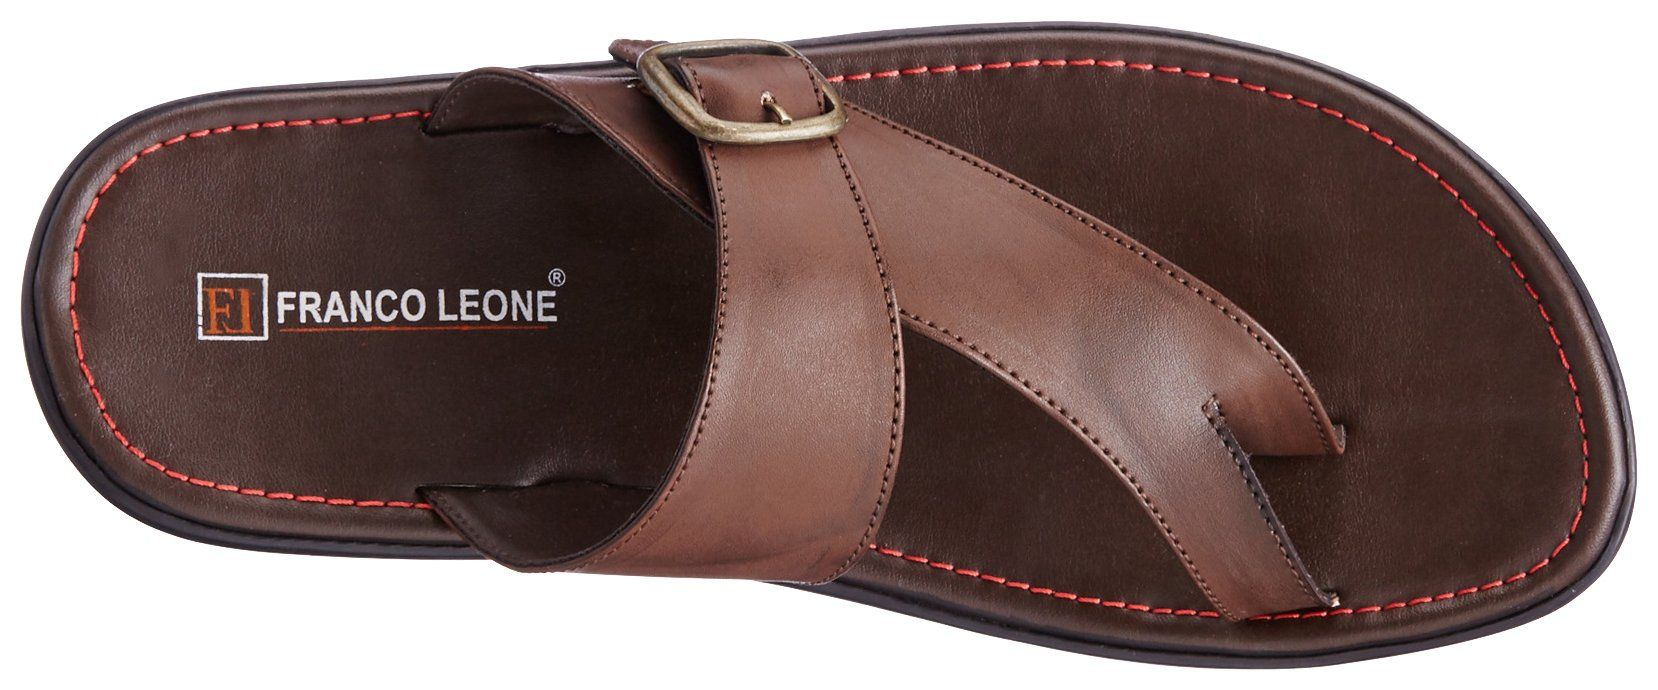 ac93f0deca20 Franco Leone Men s Flip Flops Thong Sandals  Buy Online at Low Prices in  India - Amazon.in